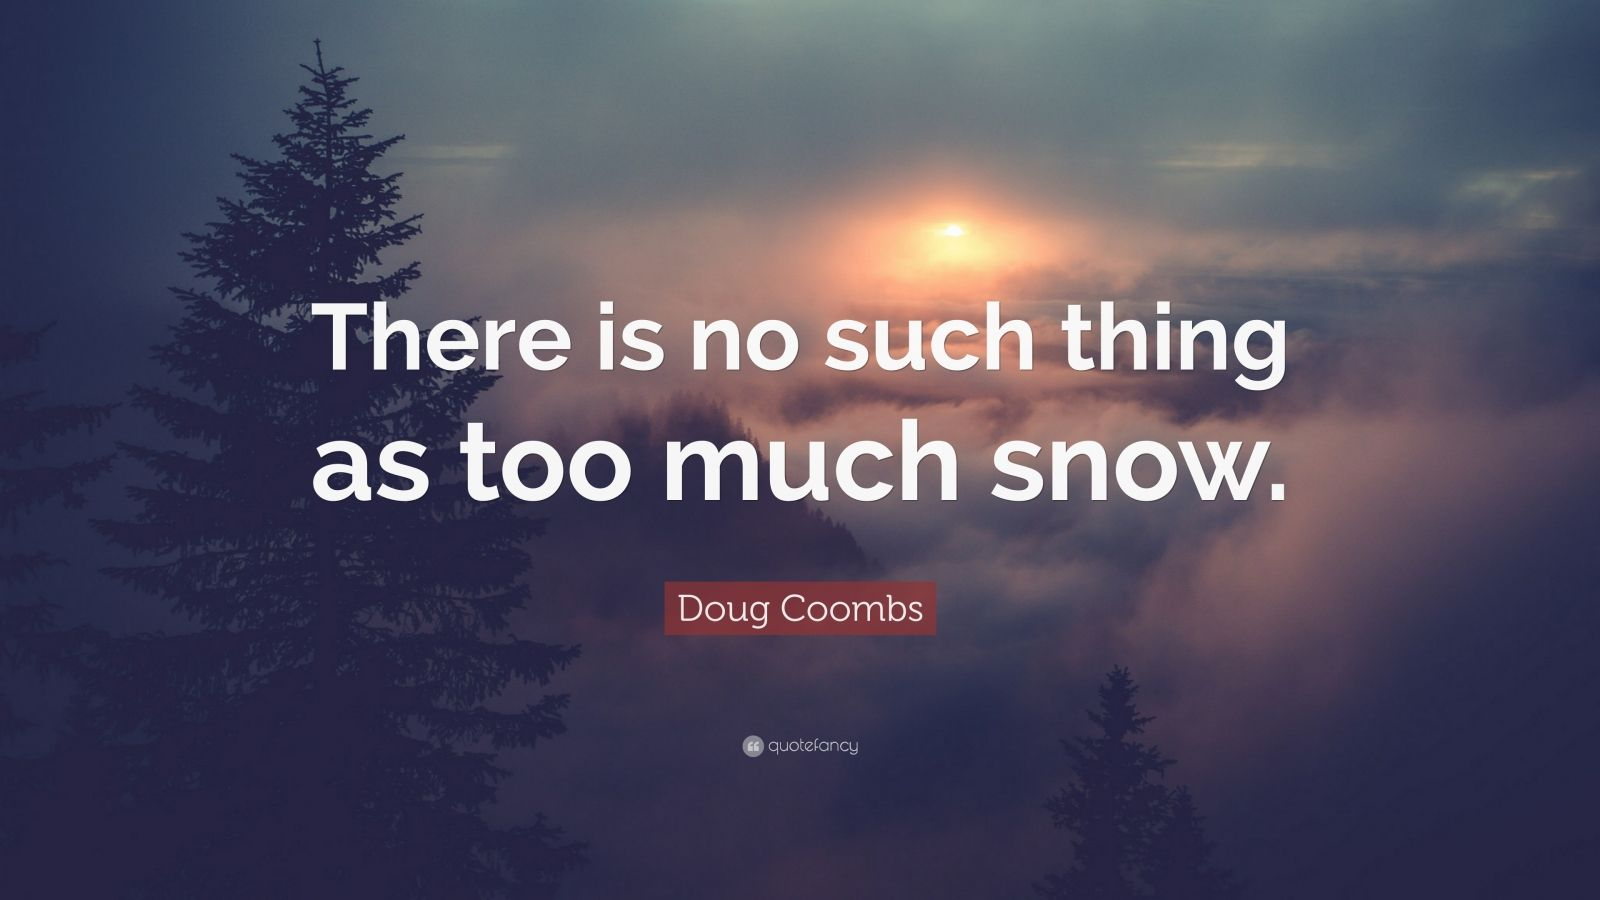 Doug Coombs Quote: There is no such thing as too much snow.